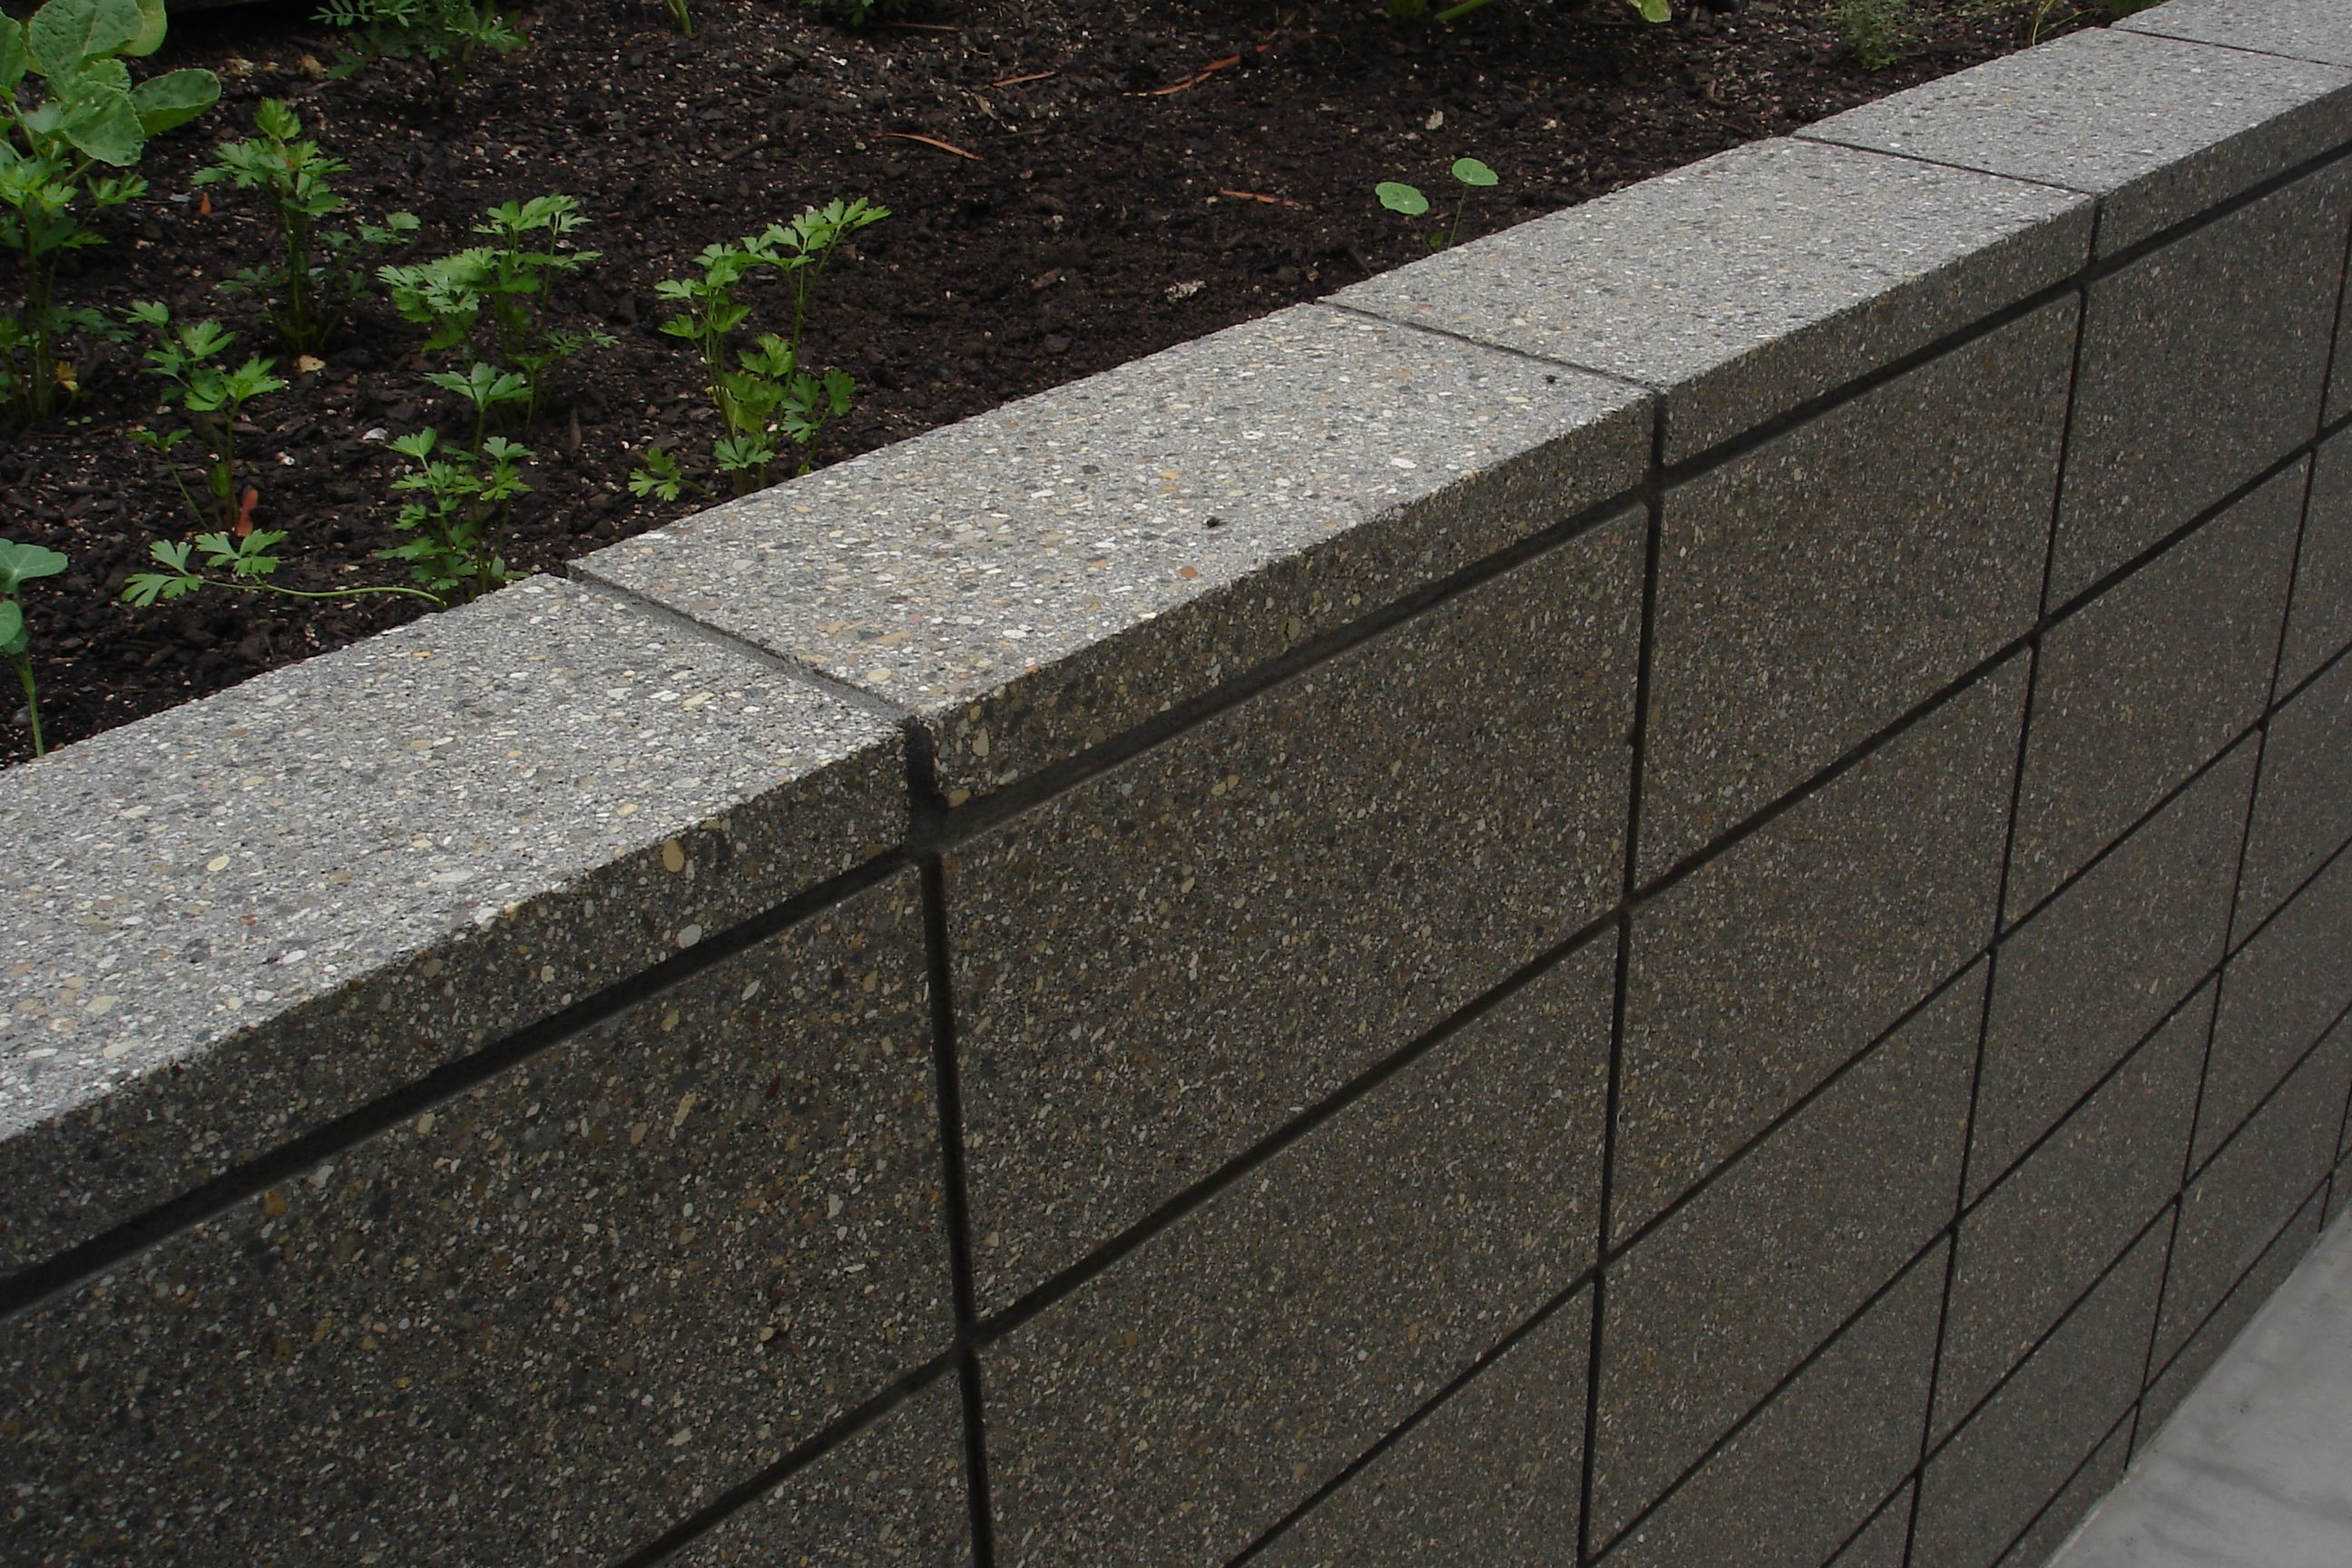 Honed grey coloured masonry retaining wall sealed in a wet Cinder block retaining wall